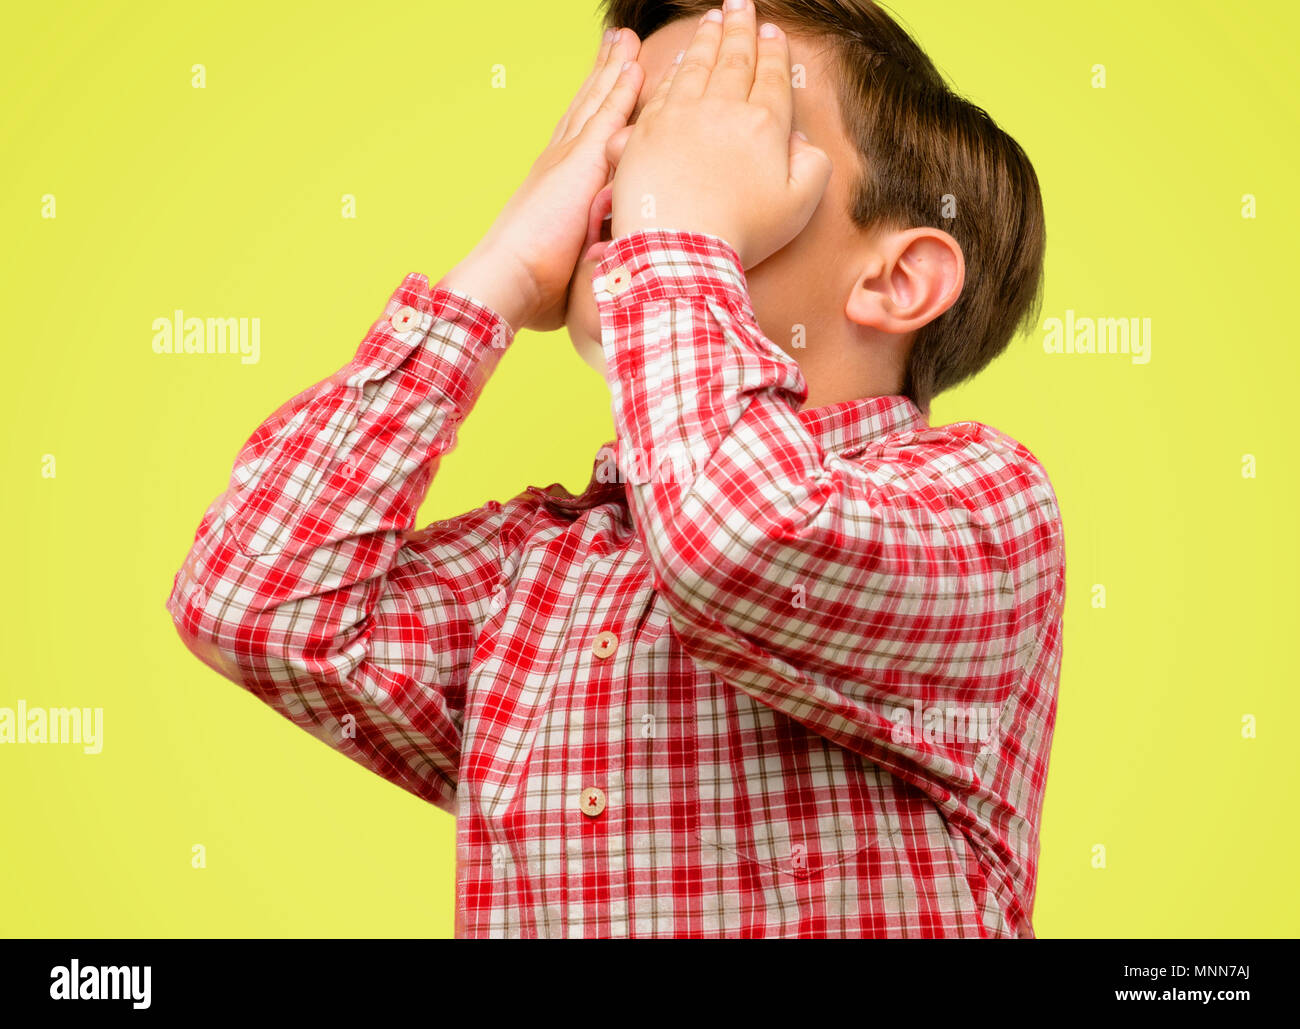 Handsome toddler child with green eyes stressful keeping hands on head, tired and frustrated over yellow background - Stock Image